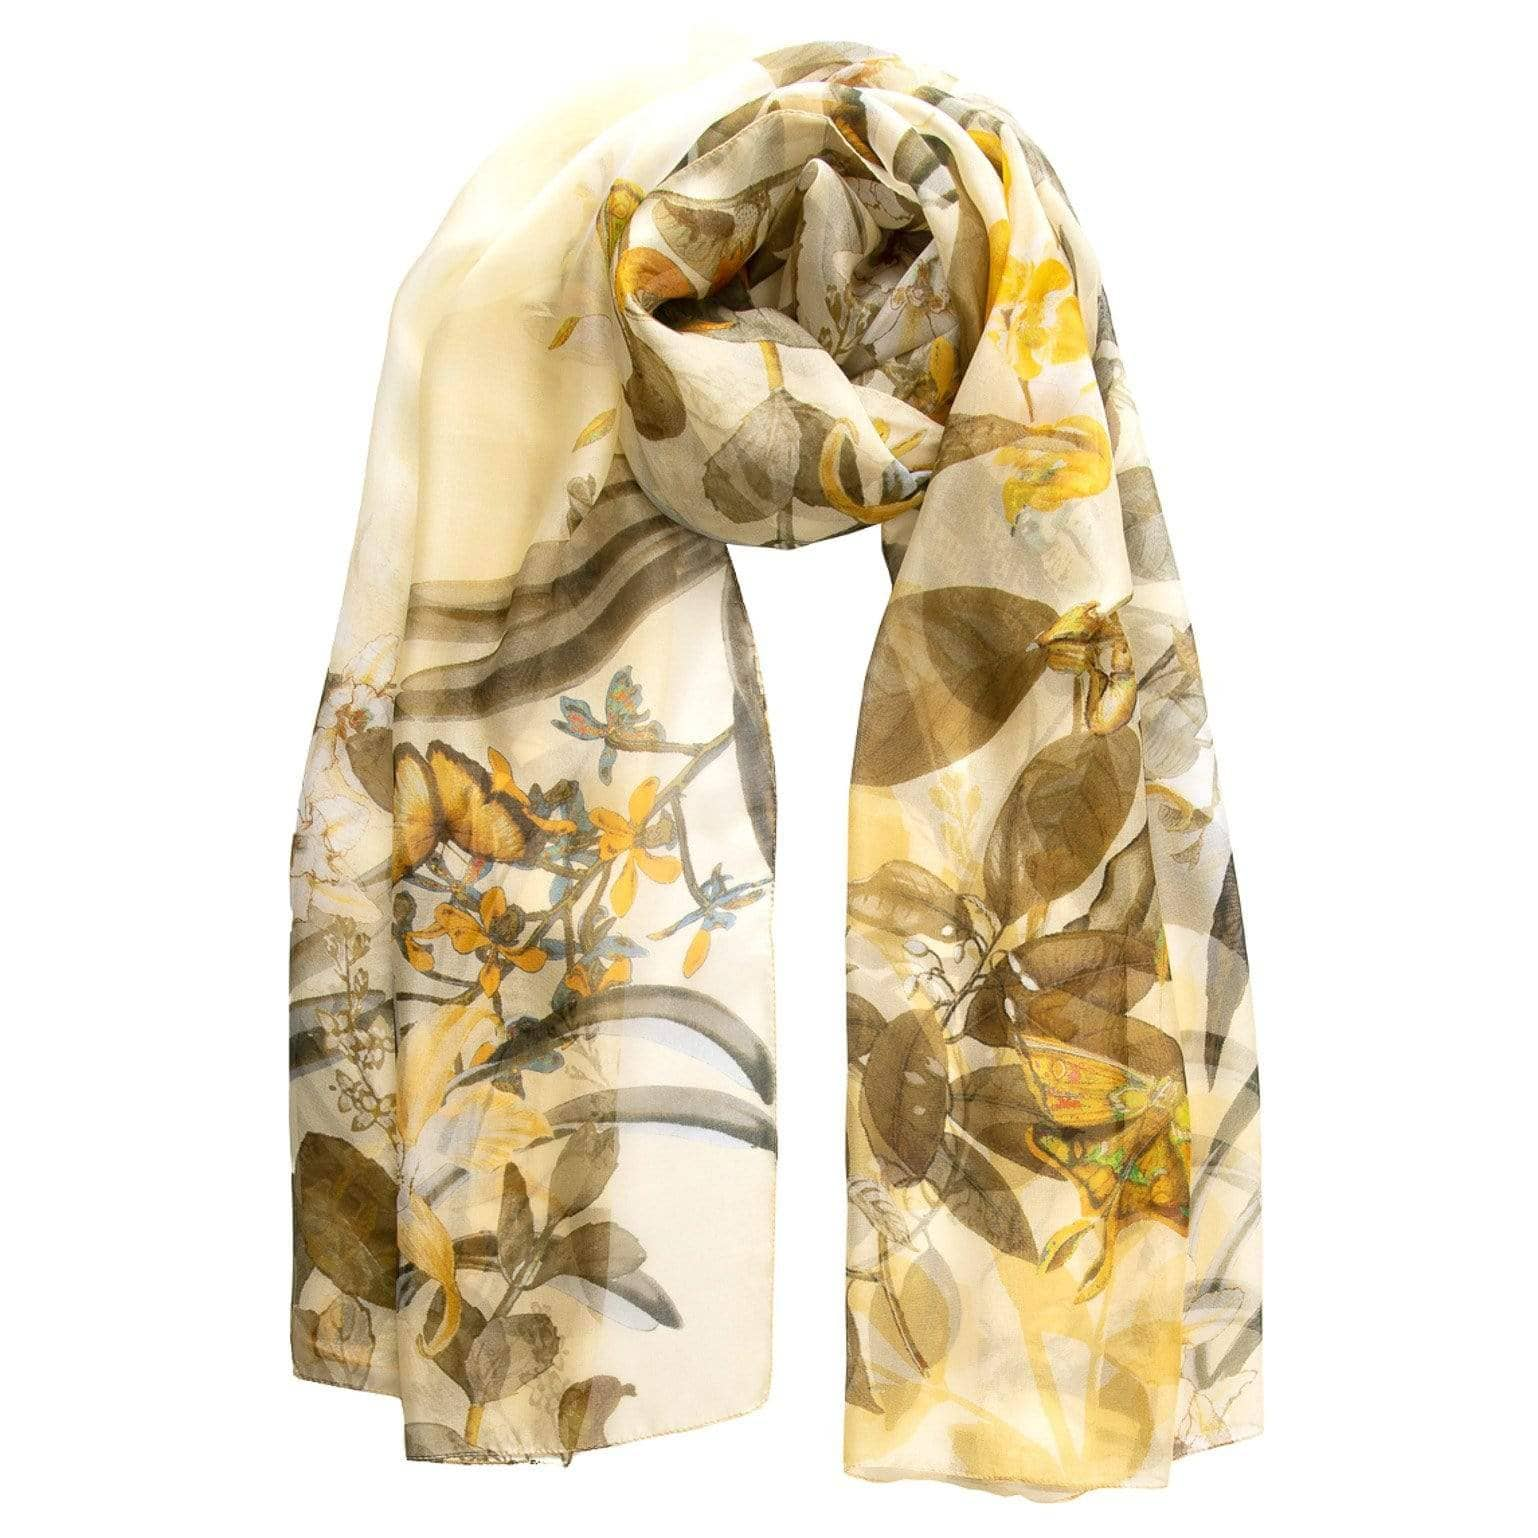 Silk Chiffon Scarf - Yellow Floral & Butterfly Print